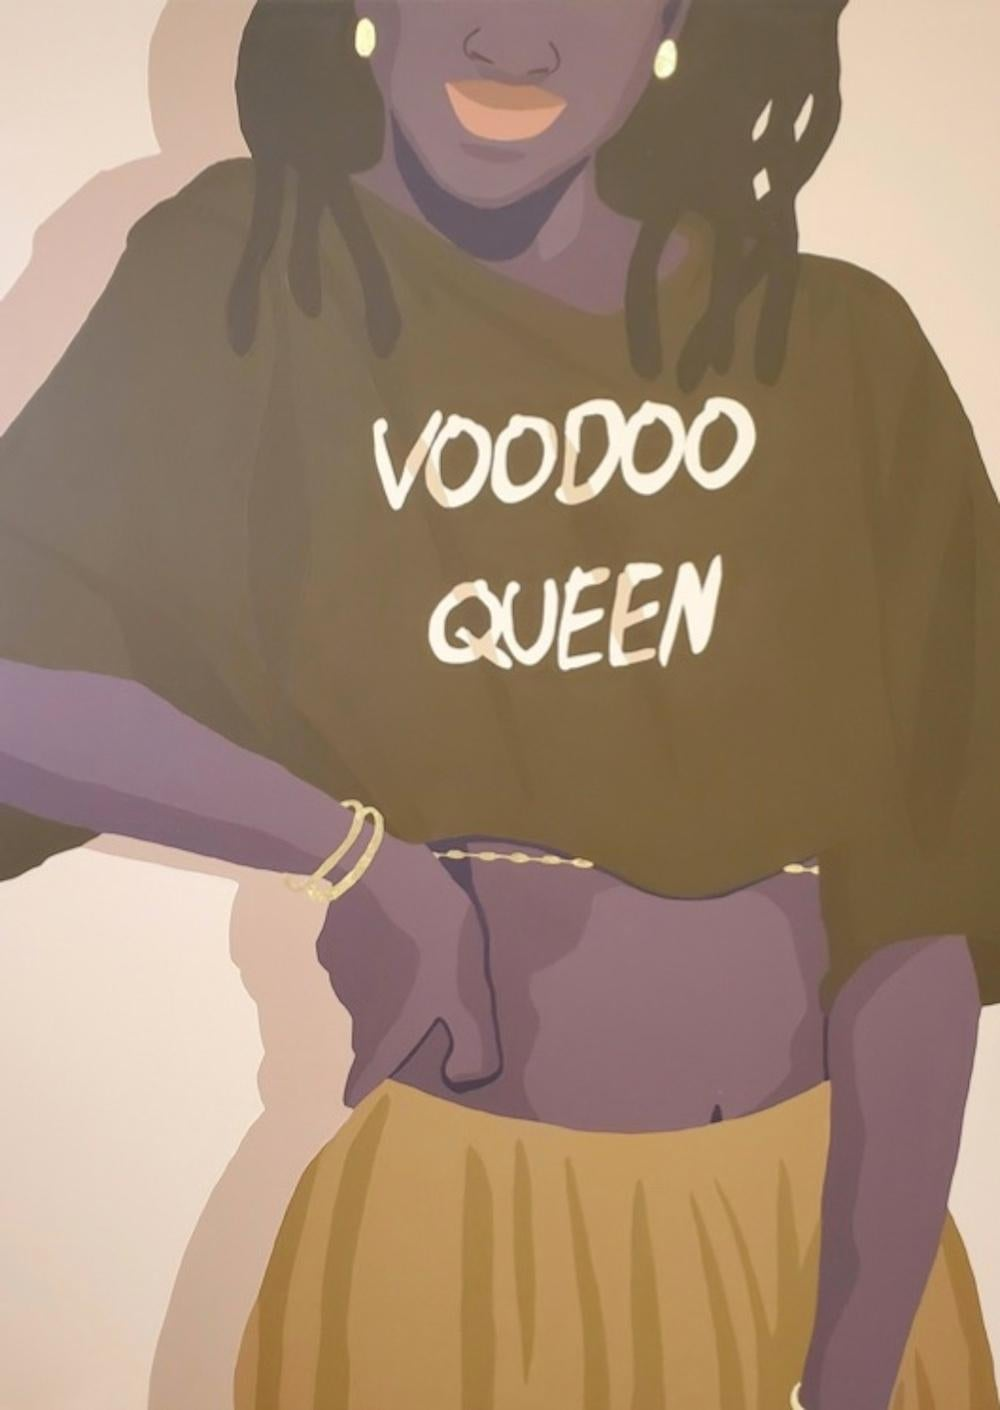 Voodoo Queen - Contemporary Painting in Tan + Gold by Nigerian American Artist